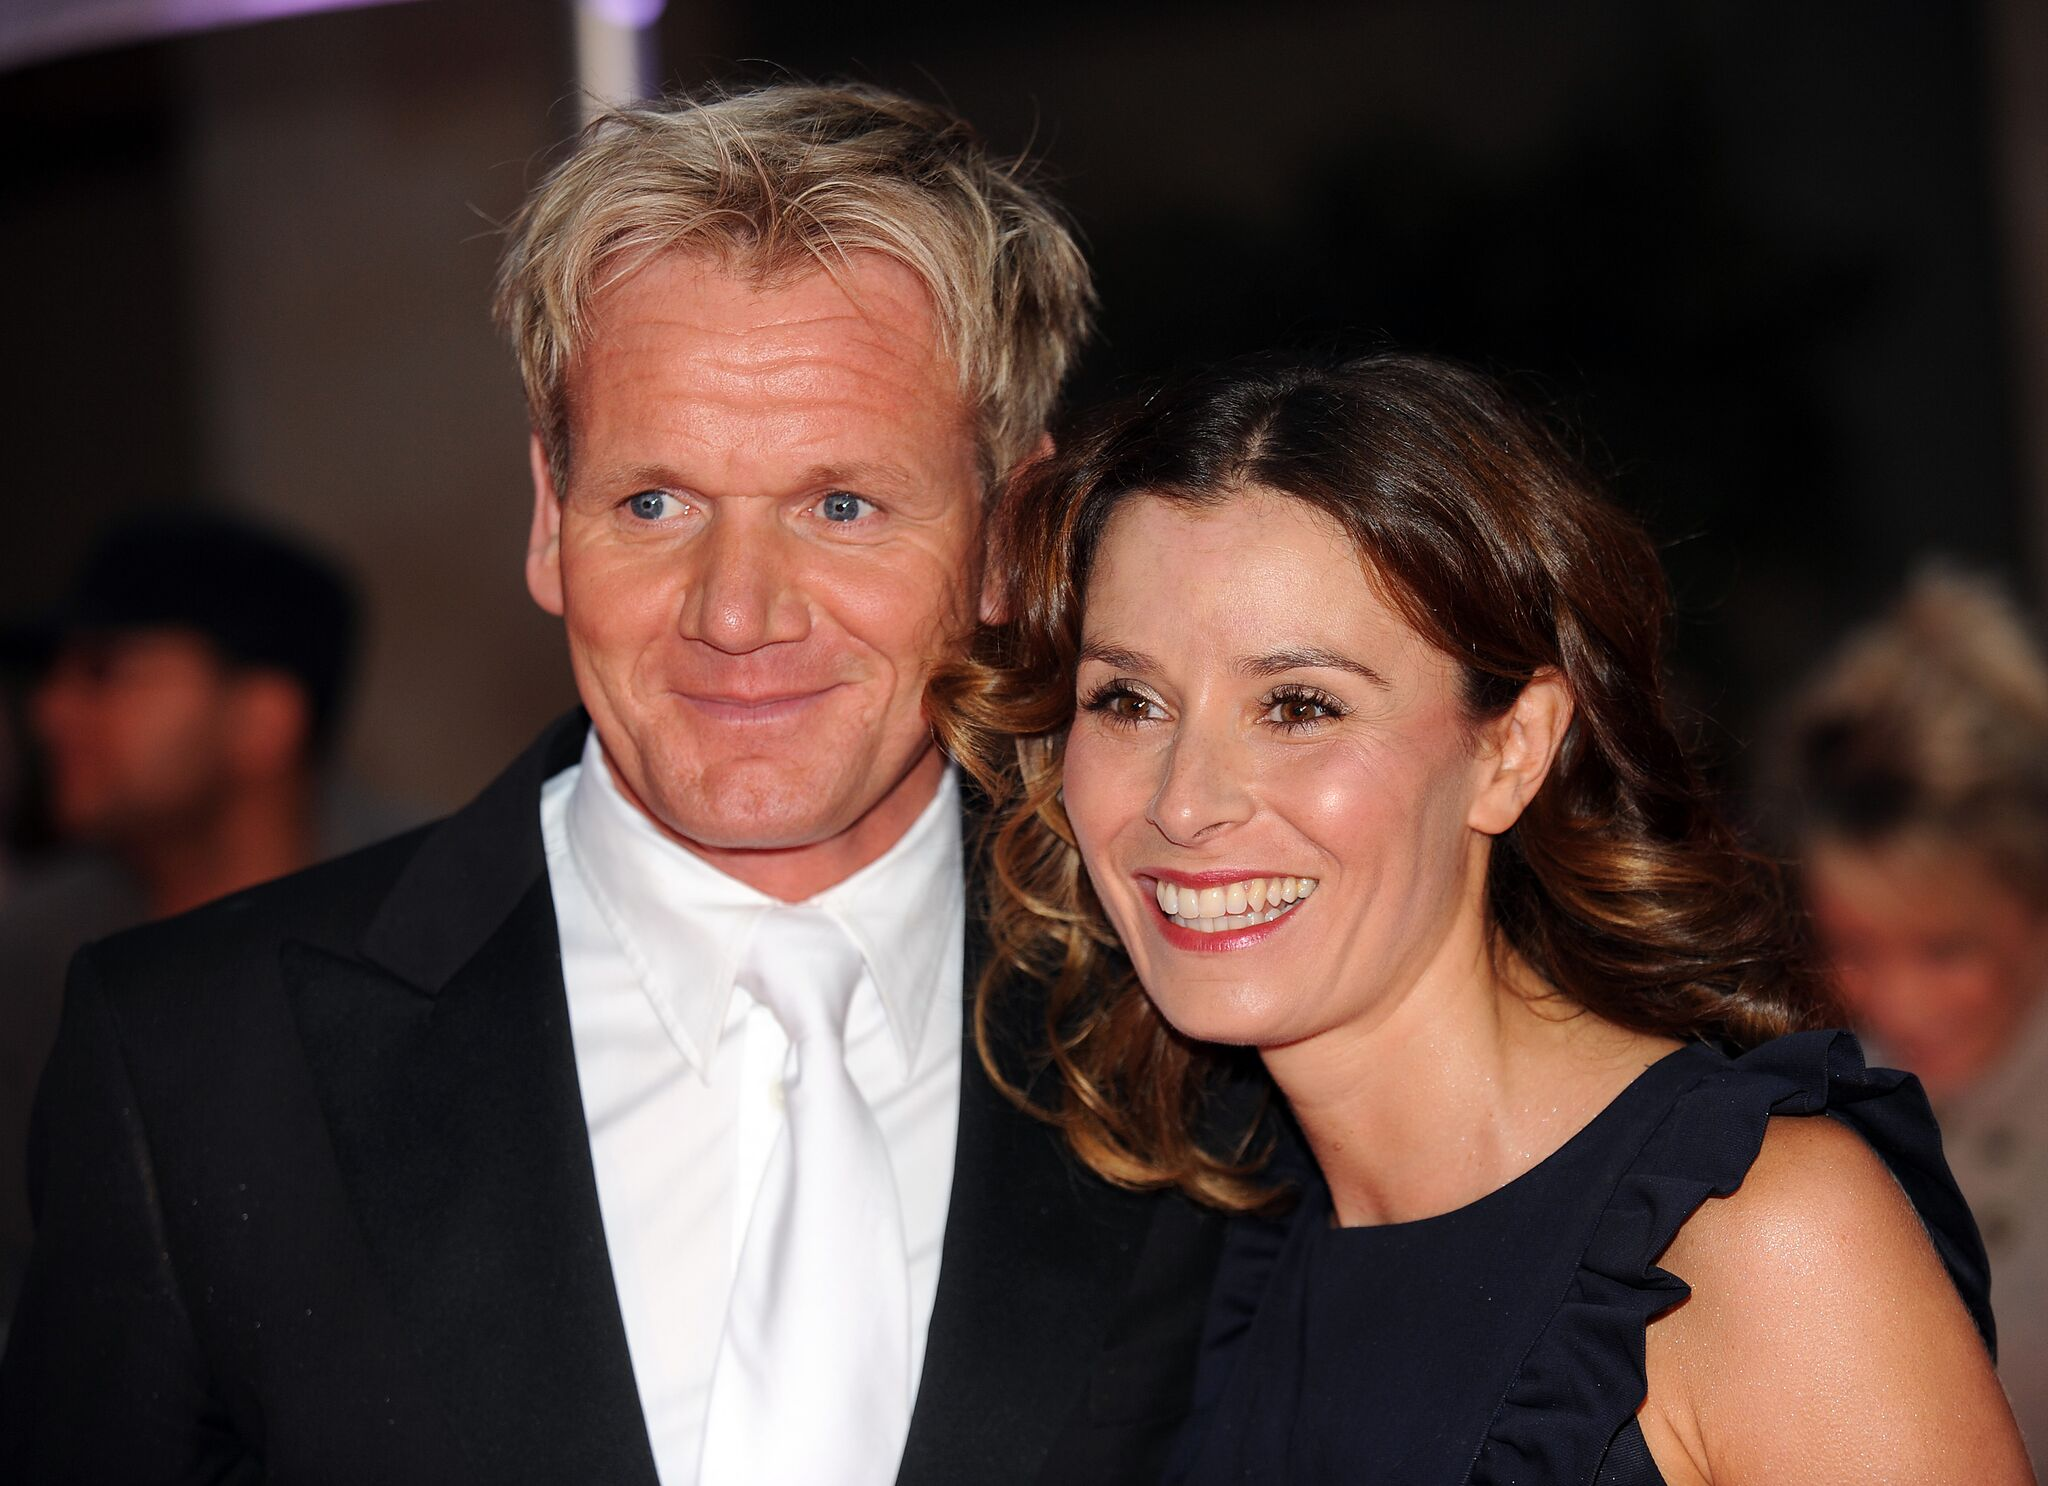 Gordon Ramsay and his wife Tanya Ramsay arrive for the Daily Mirror's Pride Of Britain Awards 2009 | Getty Images